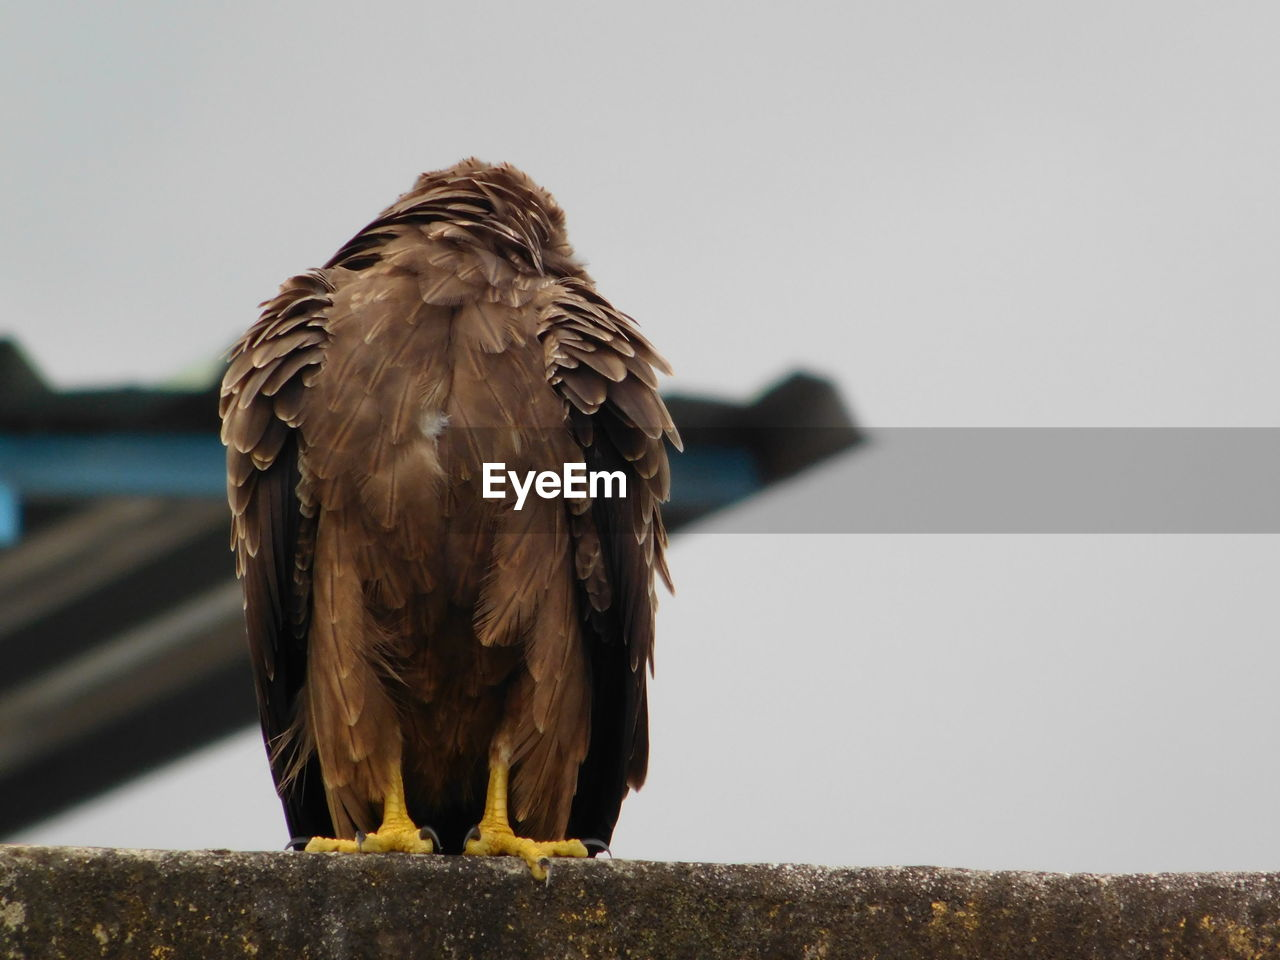 bird, vertebrate, animal themes, animal, animals in the wild, one animal, animal wildlife, bird of prey, sky, perching, copy space, clear sky, focus on foreground, nature, day, no people, close-up, eagle, outdoors, front view, eagle - bird